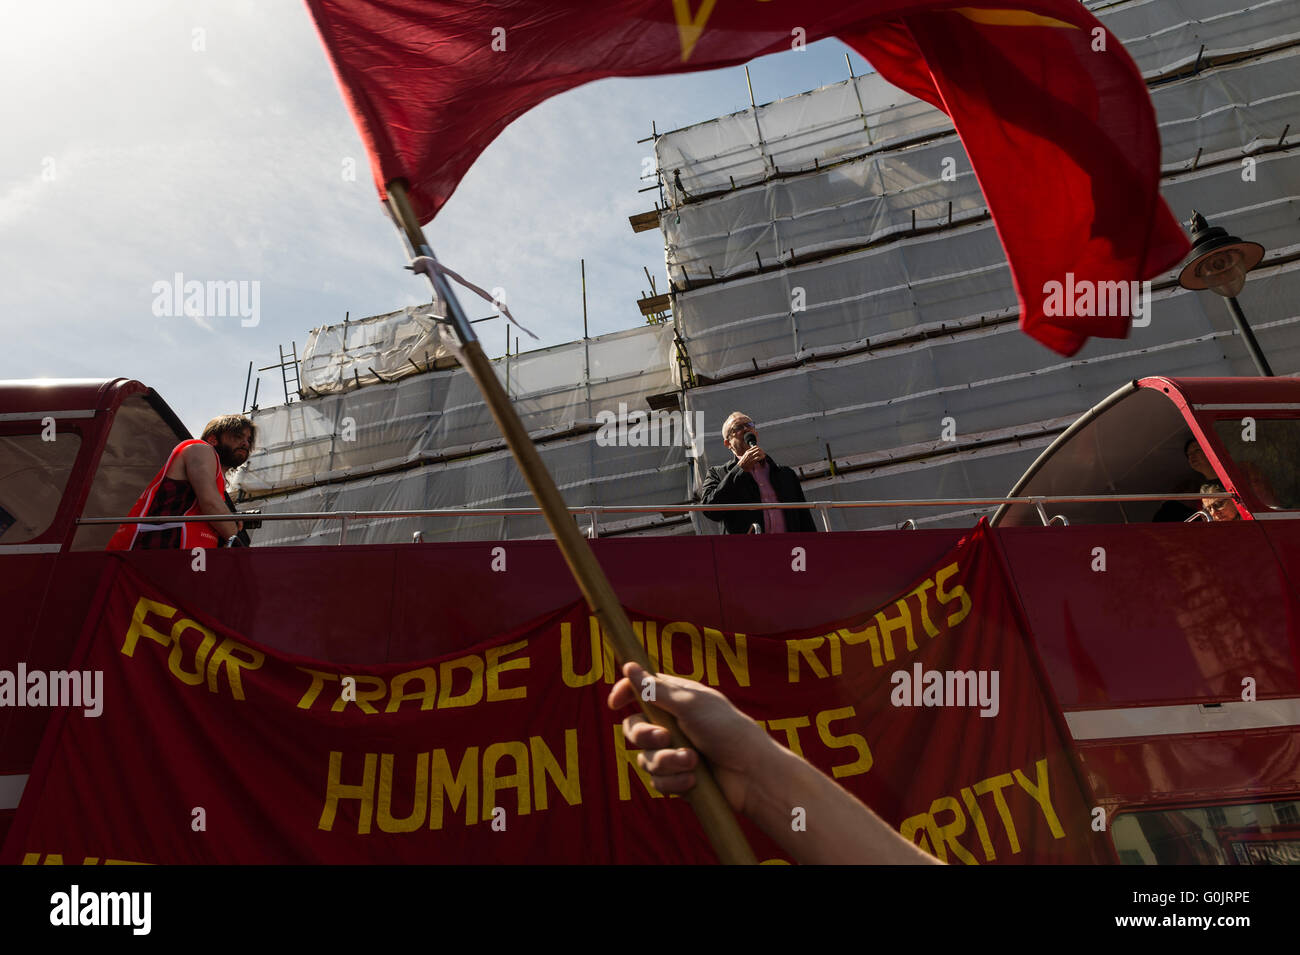 London, UK. 1st May 2016. Jeremy Corbyn, leader of the Labour Party, speaks during May Day rally. Wiktor Szymanowicz/Alamy Stock Photo